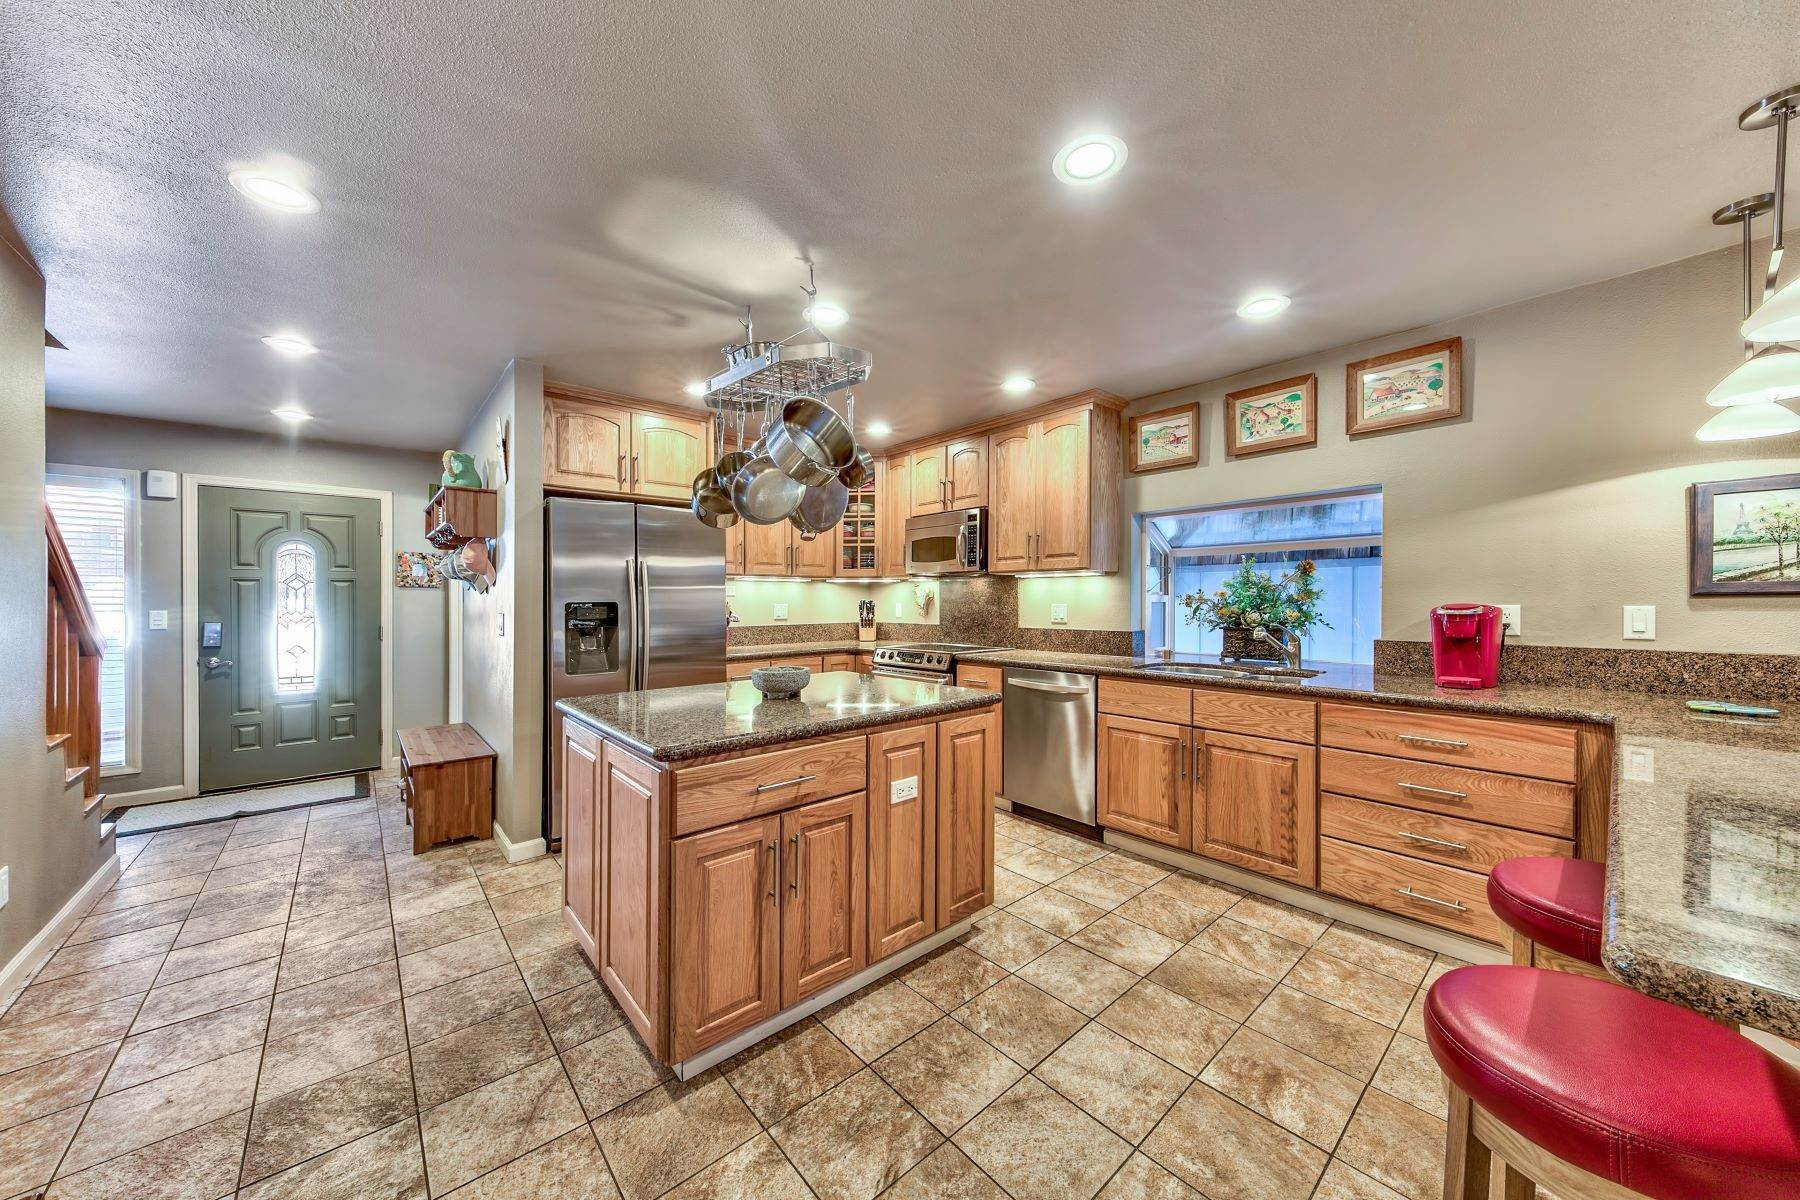 Single Family Homes for Active at Glenrock Drive 3-Bedroom Home 978 Glenrock Dr. #58 Incline Village, Nevada 89451 United States